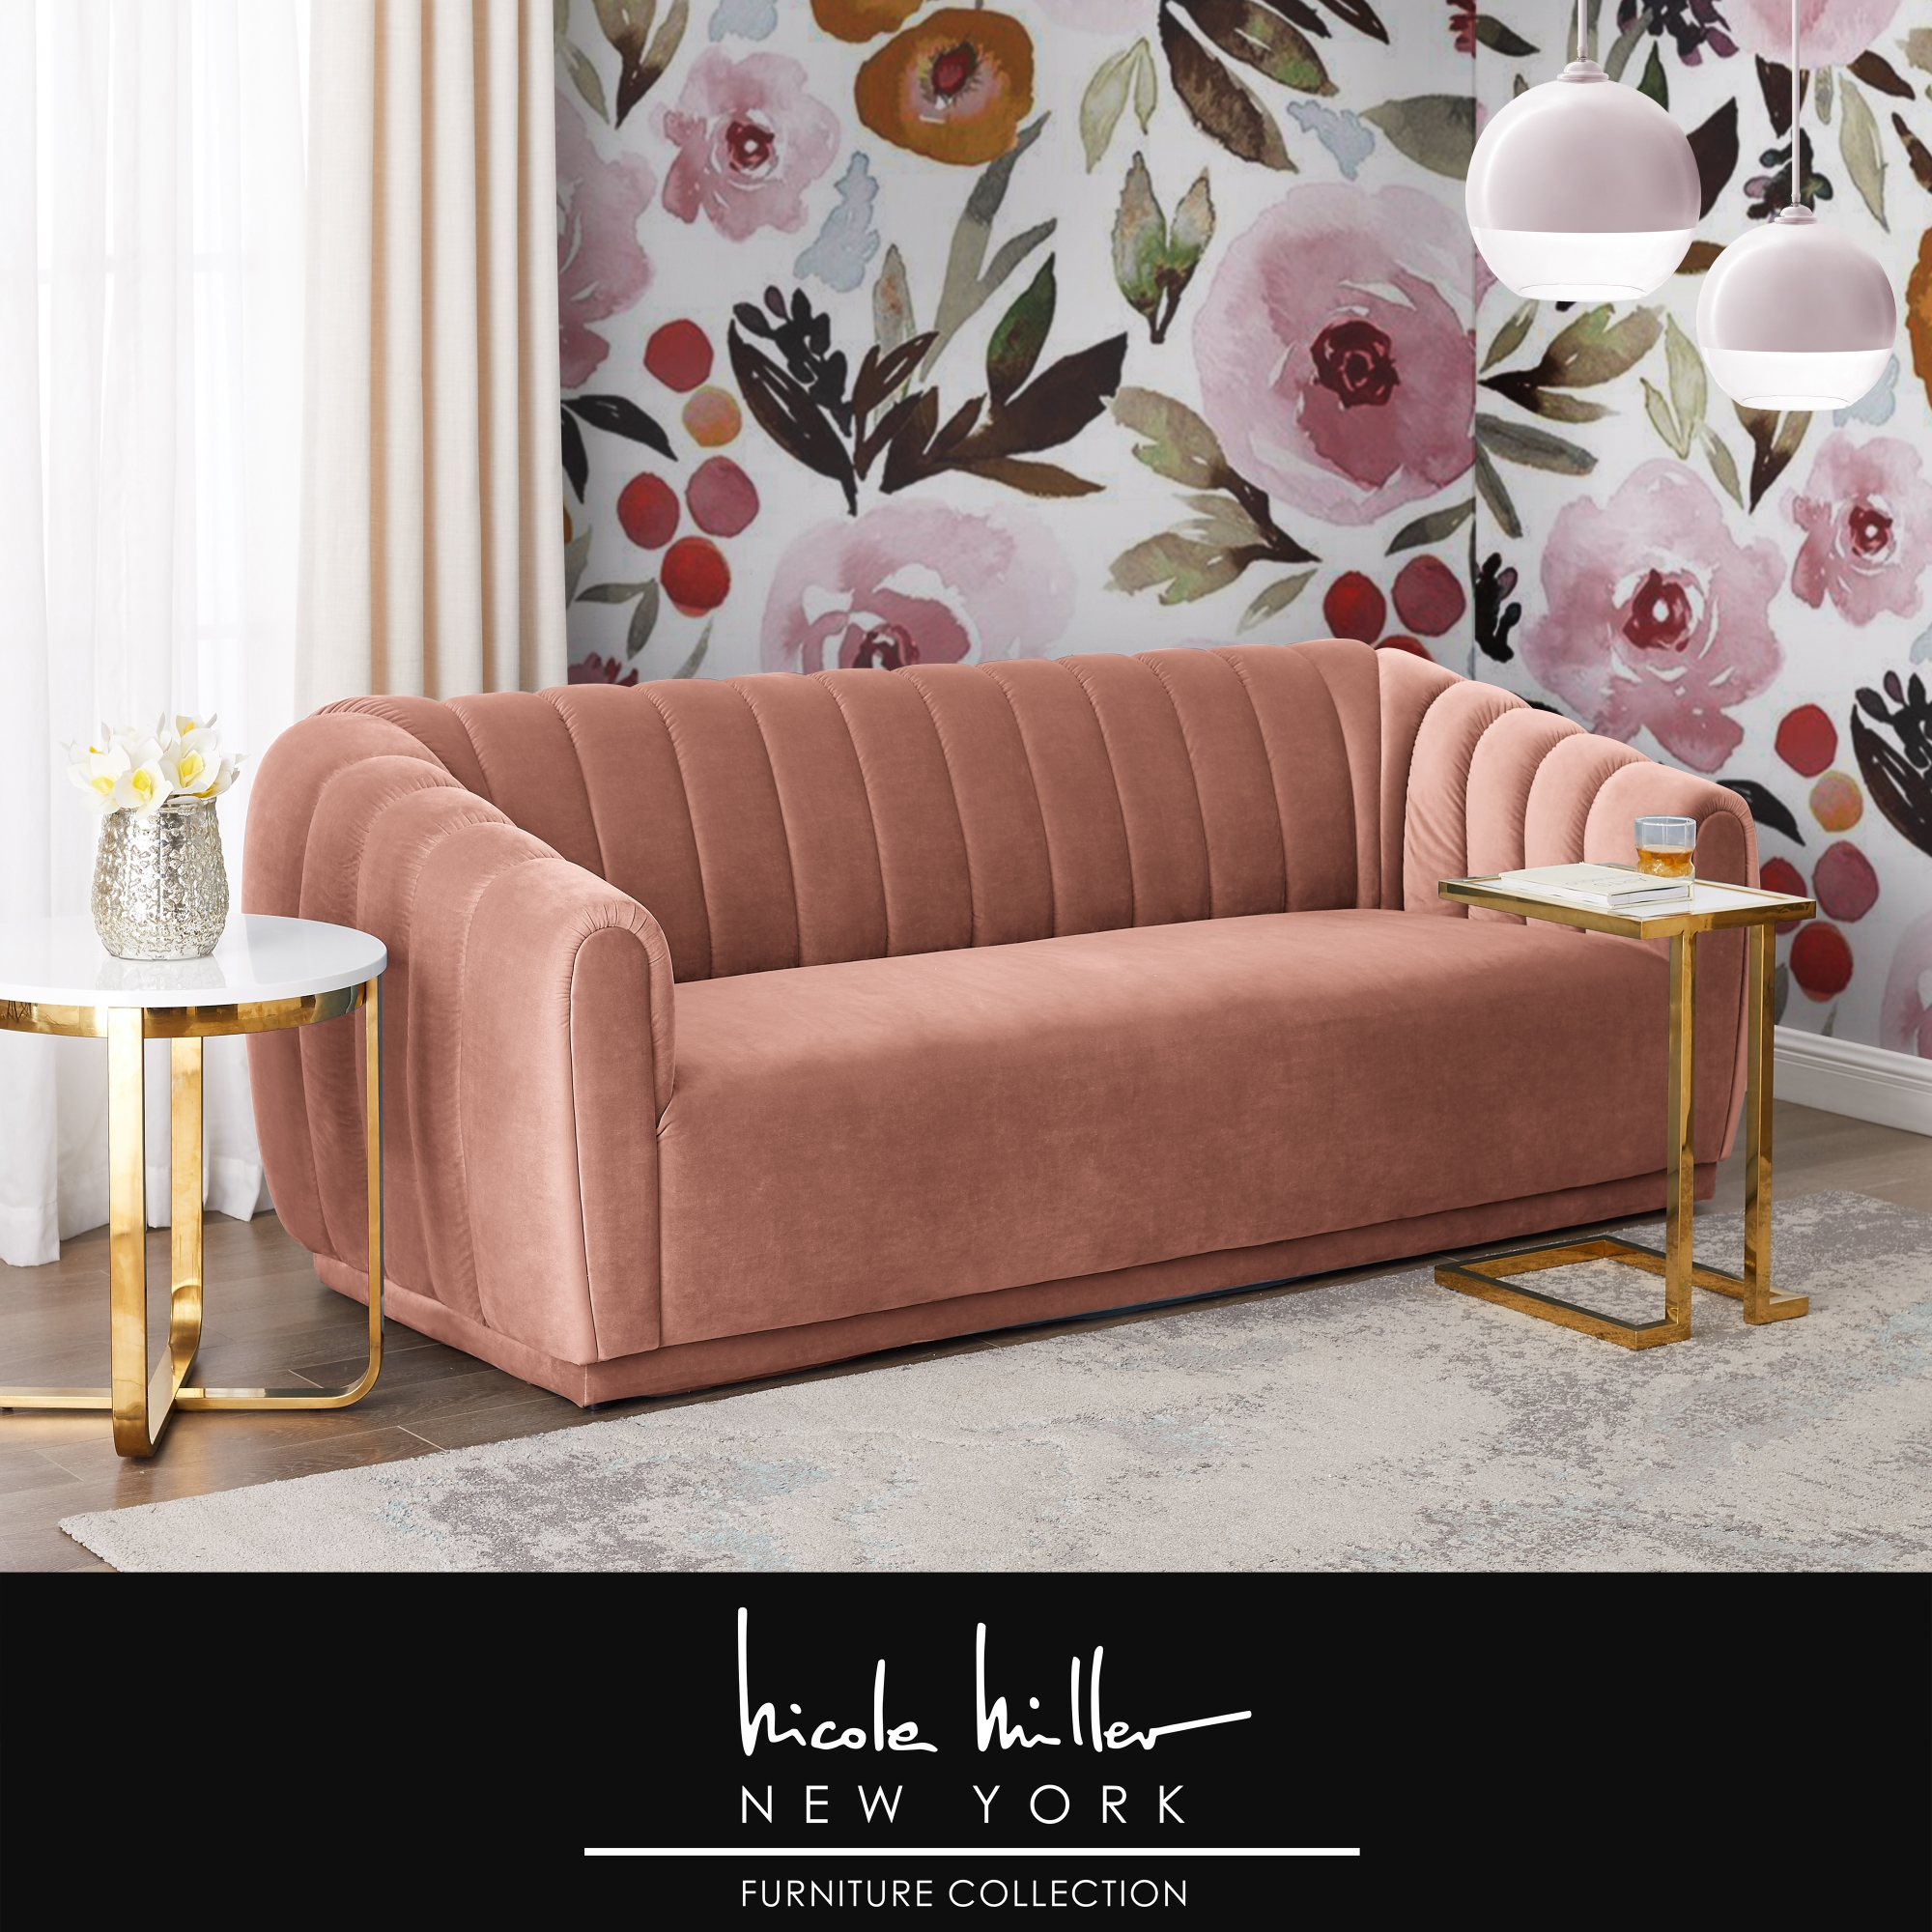 Nicole Miller Blush Velvet Sofa Channel Tufted Arms and Back Rolled Arms